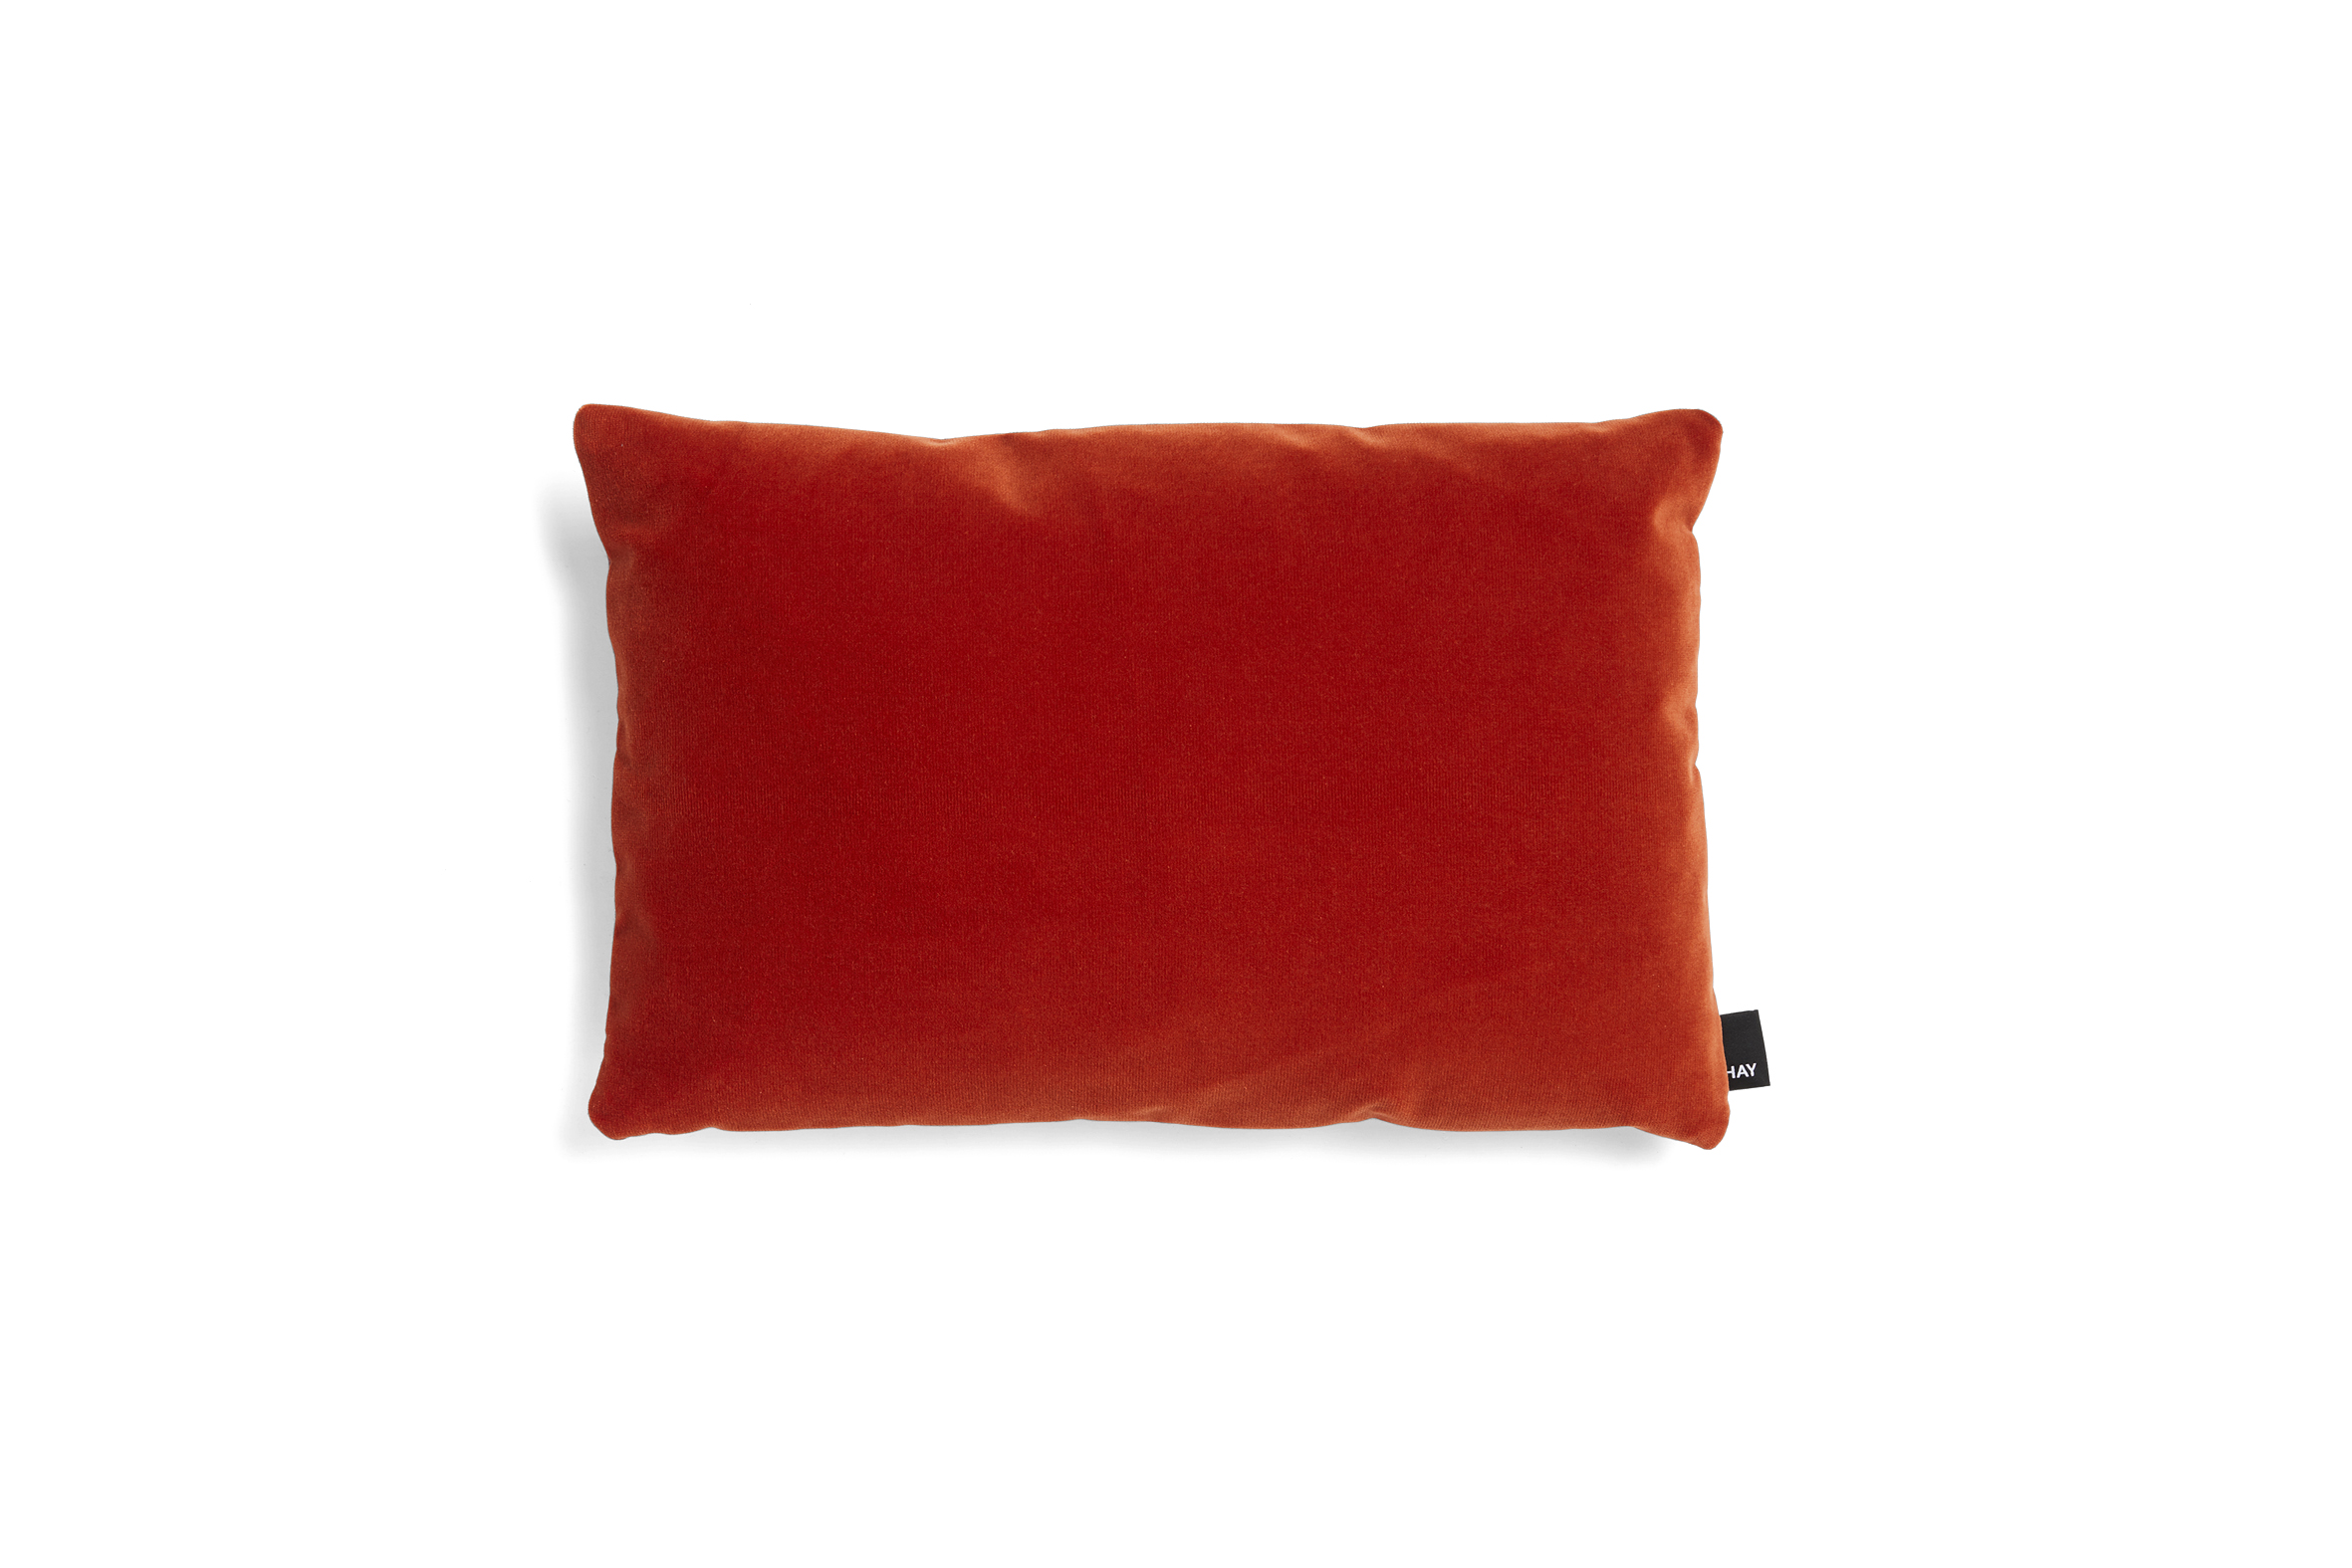 Eclectic cushion 45x30 vibrant red